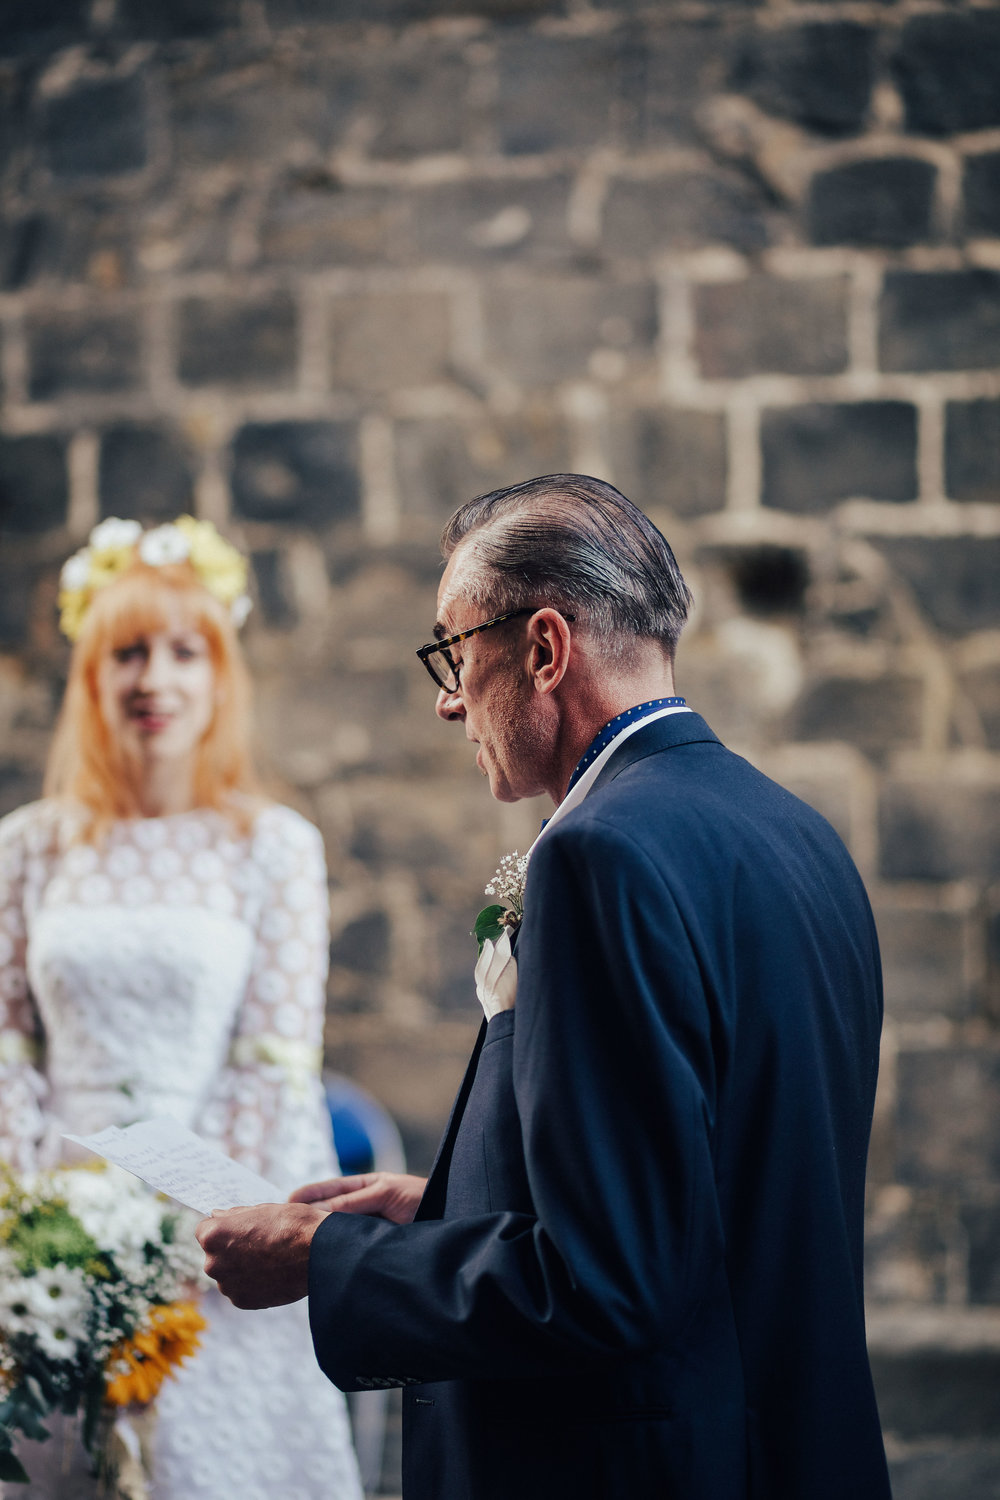 ALTERNATIVE_WEDDING_PHOTOGRAPHY_LEEDS_UK_PJ_PHILLIPS_PHOTOGRAPHY_66.jpg